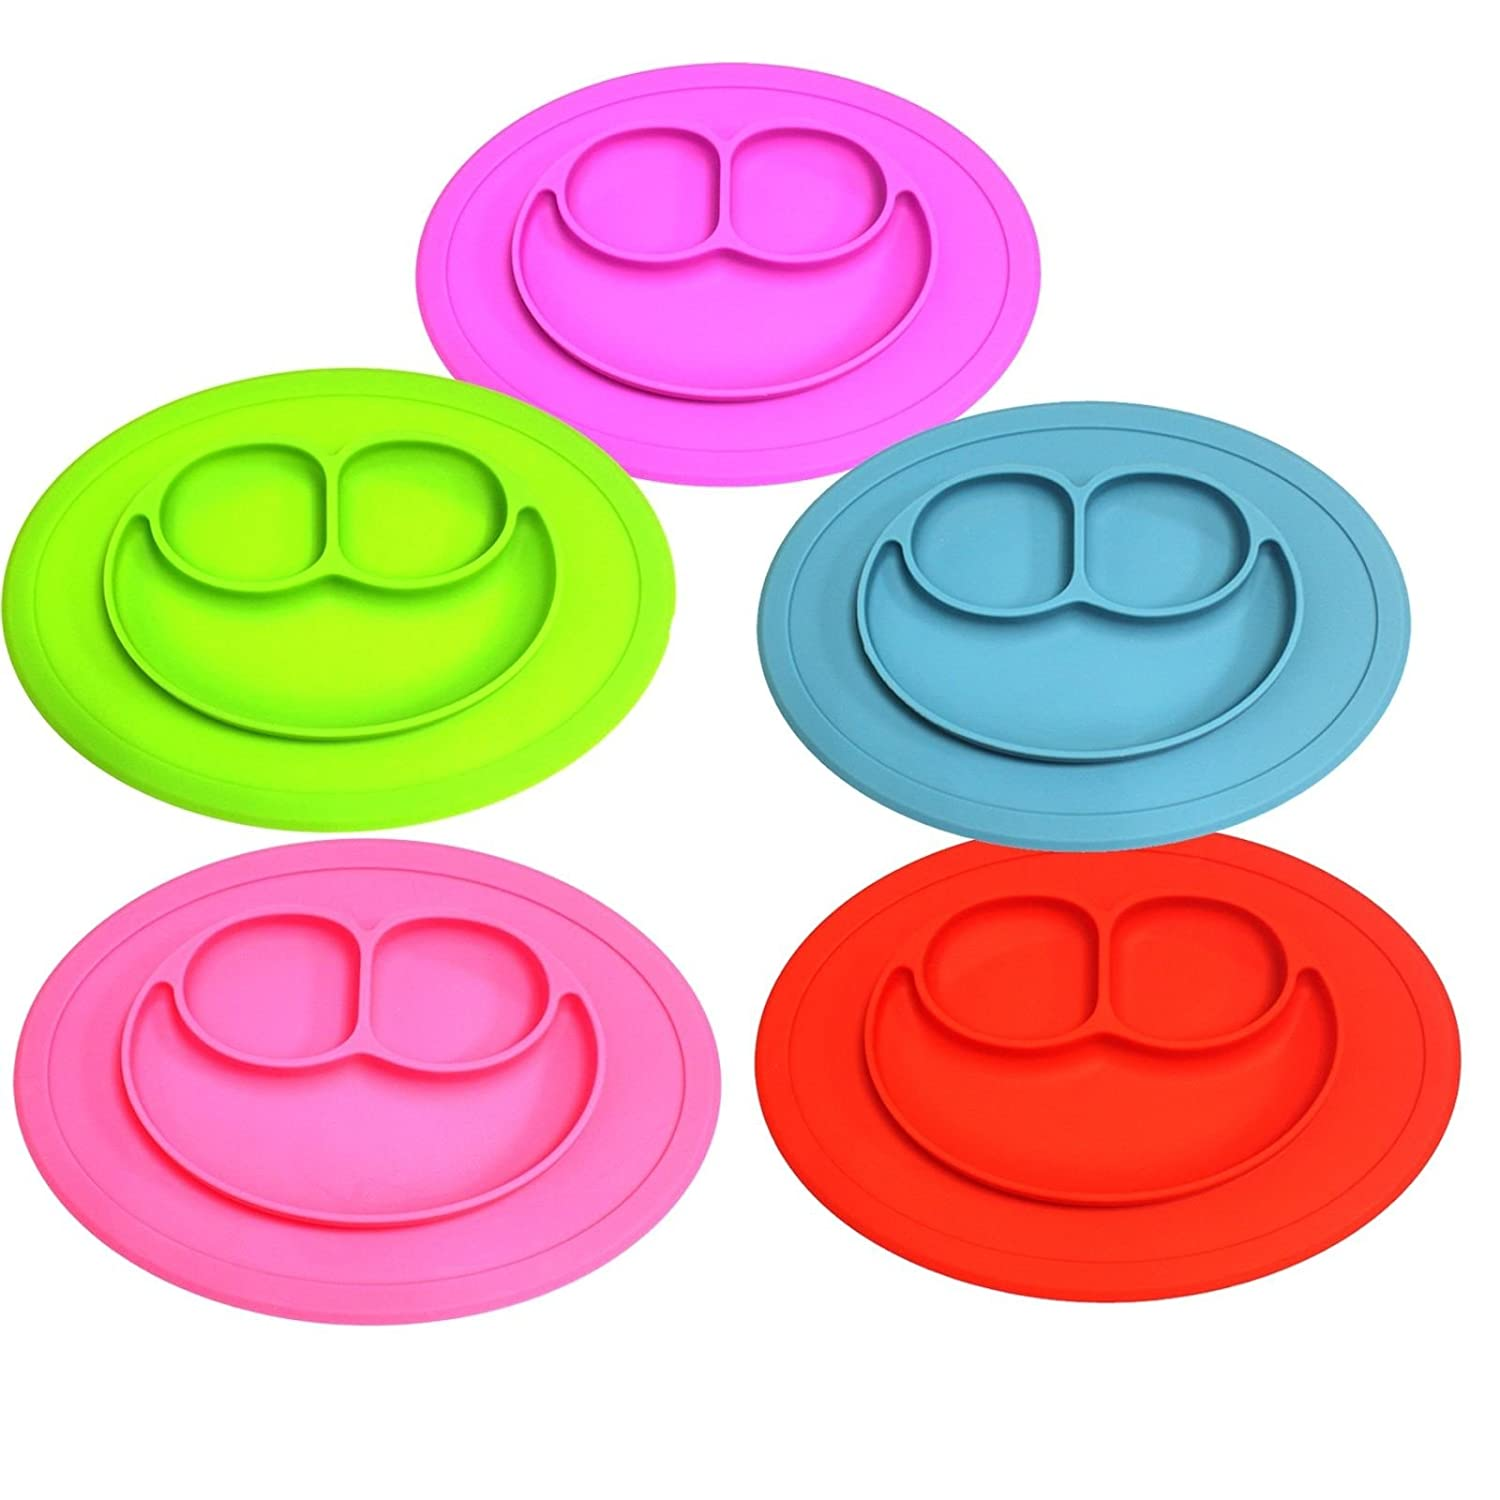 Portable Baby Plate for Toddlers and Kids Qshare Toddler Plate BPA-Free FDA Approved Strong Suction Plates for Toddlers Dishwasher and Microwave Safe Silicone Placemat 22 * 20 * 2.5cm